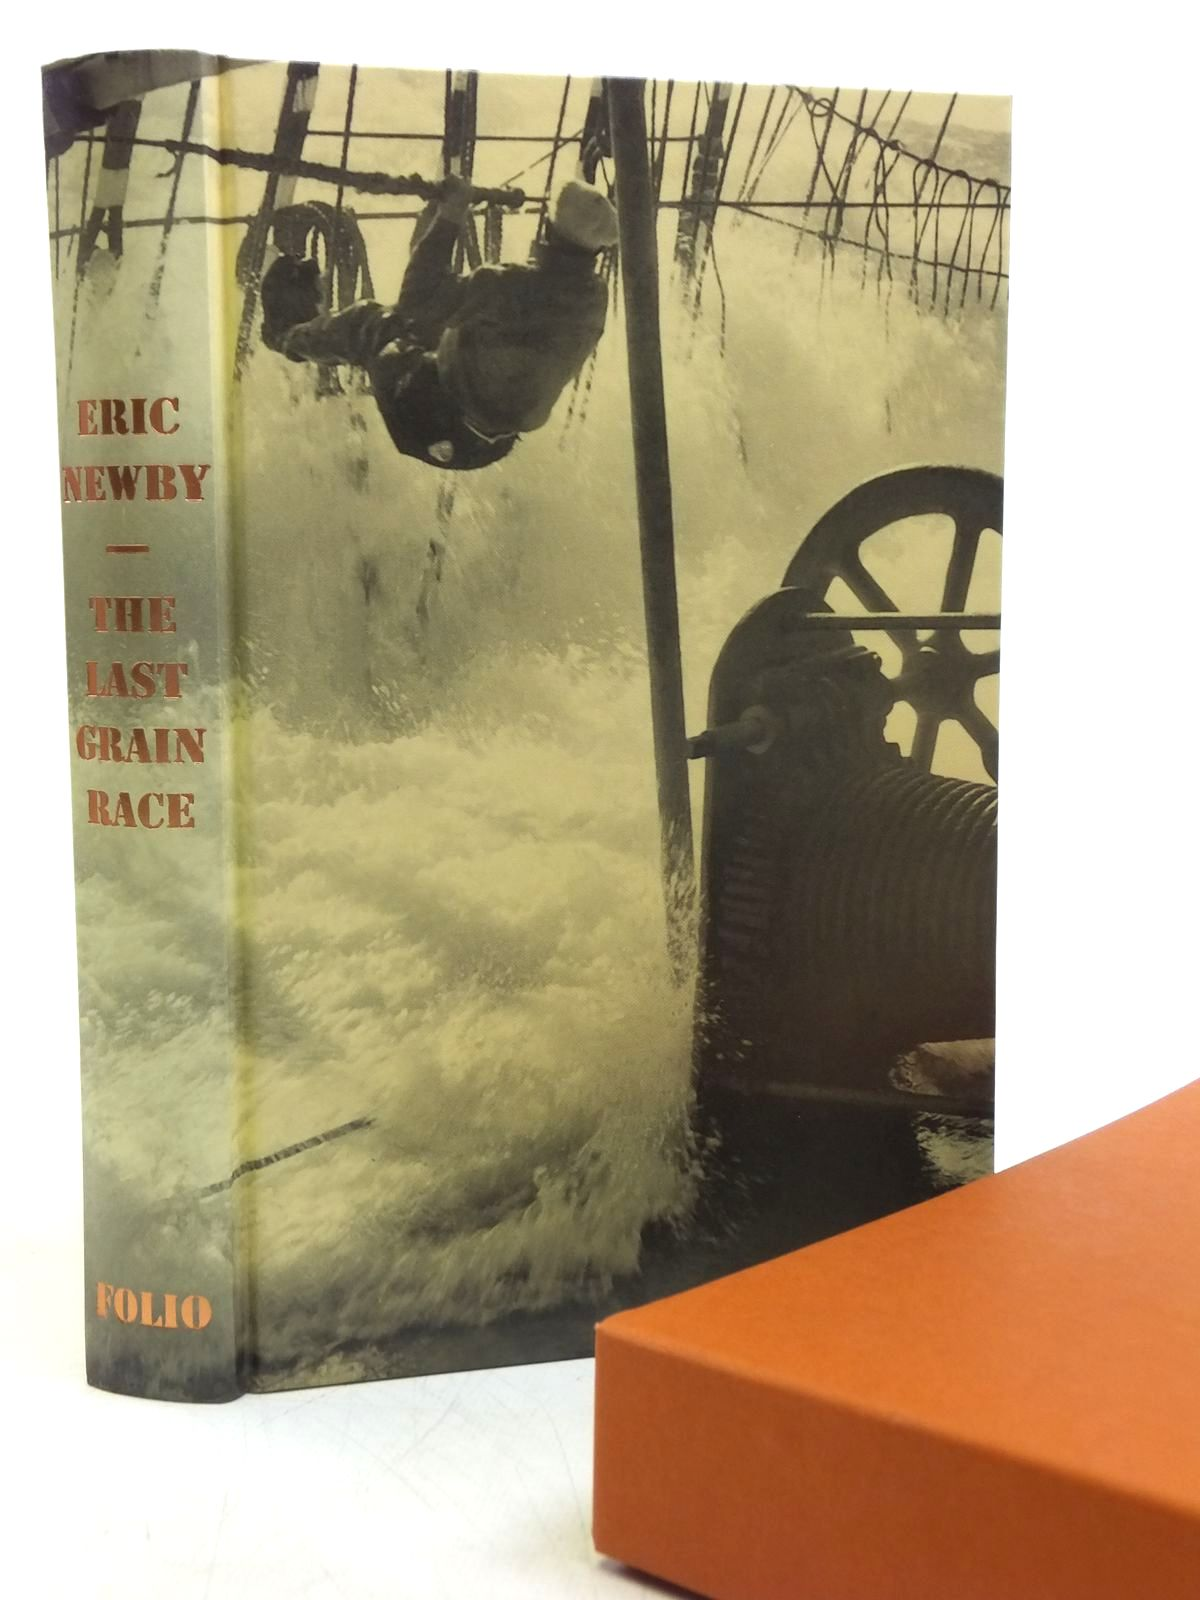 Photo of THE LAST GRAIN RACE written by Newby, Eric published by Folio Society (STOCK CODE: 2119763)  for sale by Stella & Rose's Books